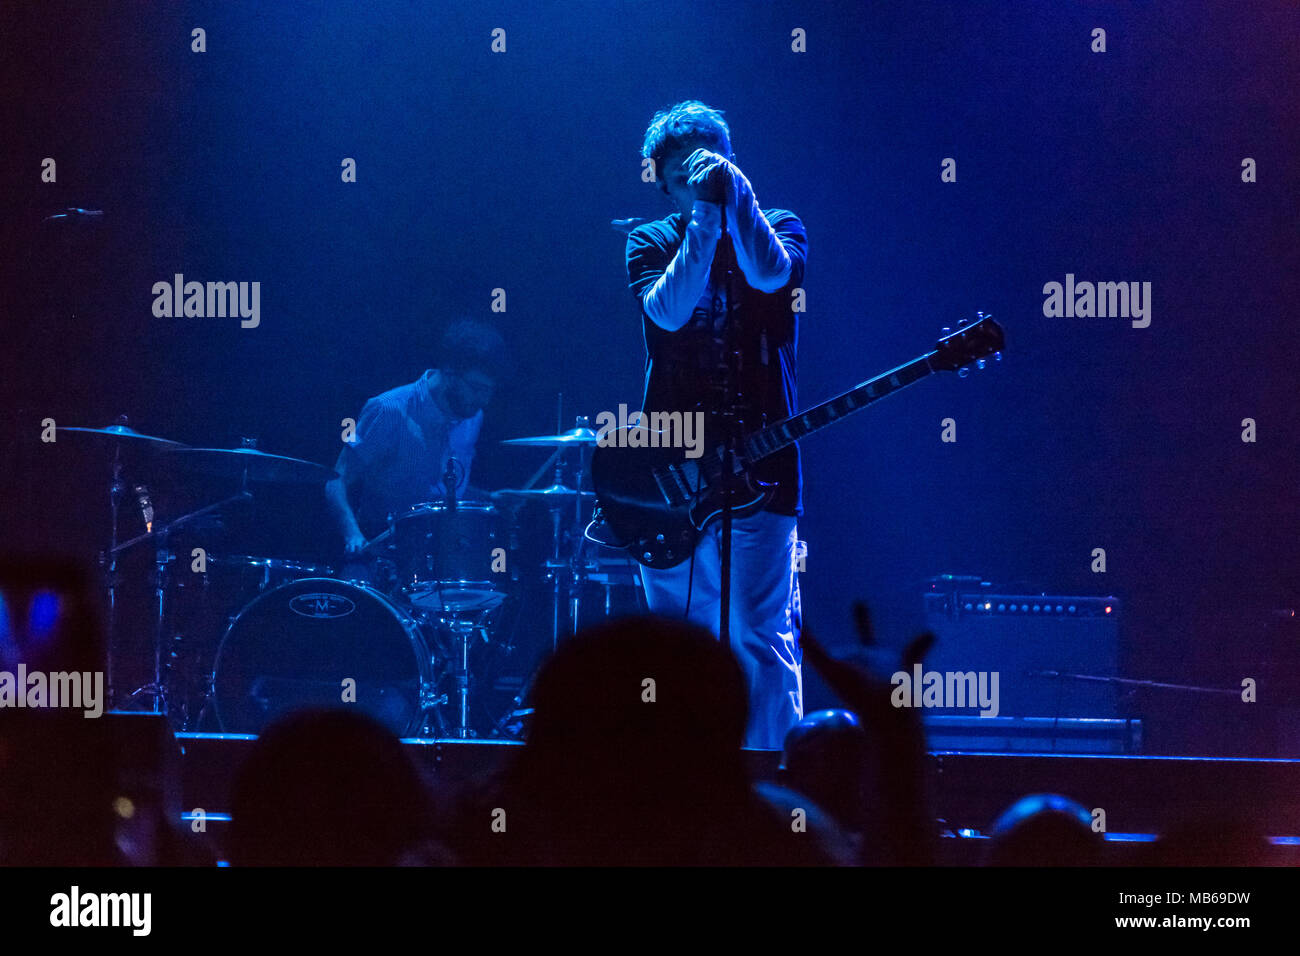 Nothing But Thieves open for AWOLNATION on the Here Come The Runts Tour in Los Angeles, CA - Stock Image